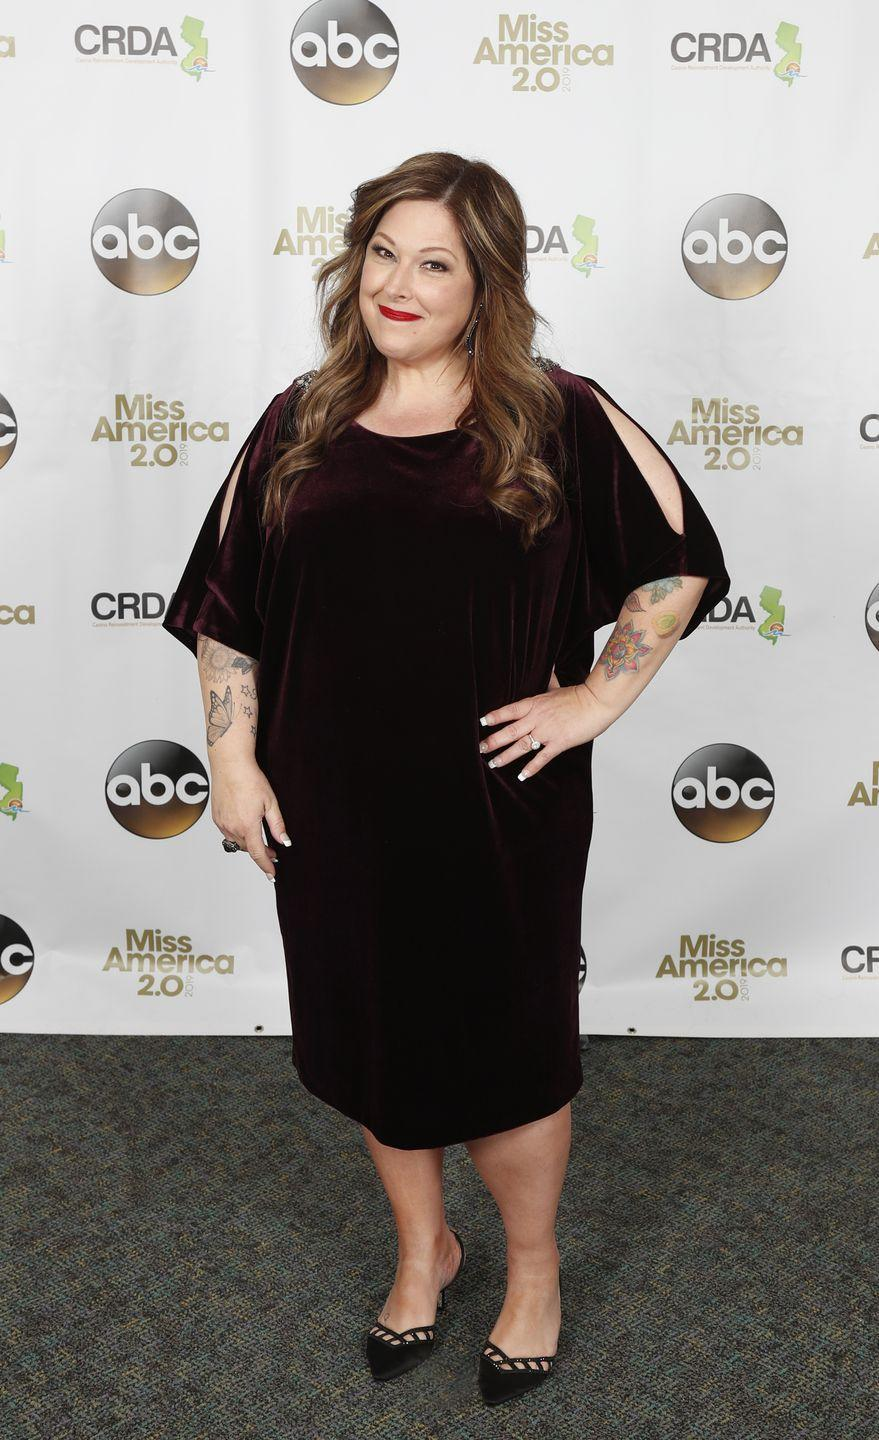 """<p>Carnie opted for a second go around in 2012, but this time she chose lap band surgery. Just months after the procedure, the singer told <em><a href=""""https://people.com/bodies/carnie-wilson-has-weight-loss-surgery-again/"""" rel=""""nofollow noopener"""" target=""""_blank"""" data-ylk=""""slk:People"""" class=""""link rapid-noclick-resp"""">People</a></em> that she had lost 30 pounds: """"It was the right decision for me and I'm doing really well so far. It's all about taking good care of myself.""""</p>"""